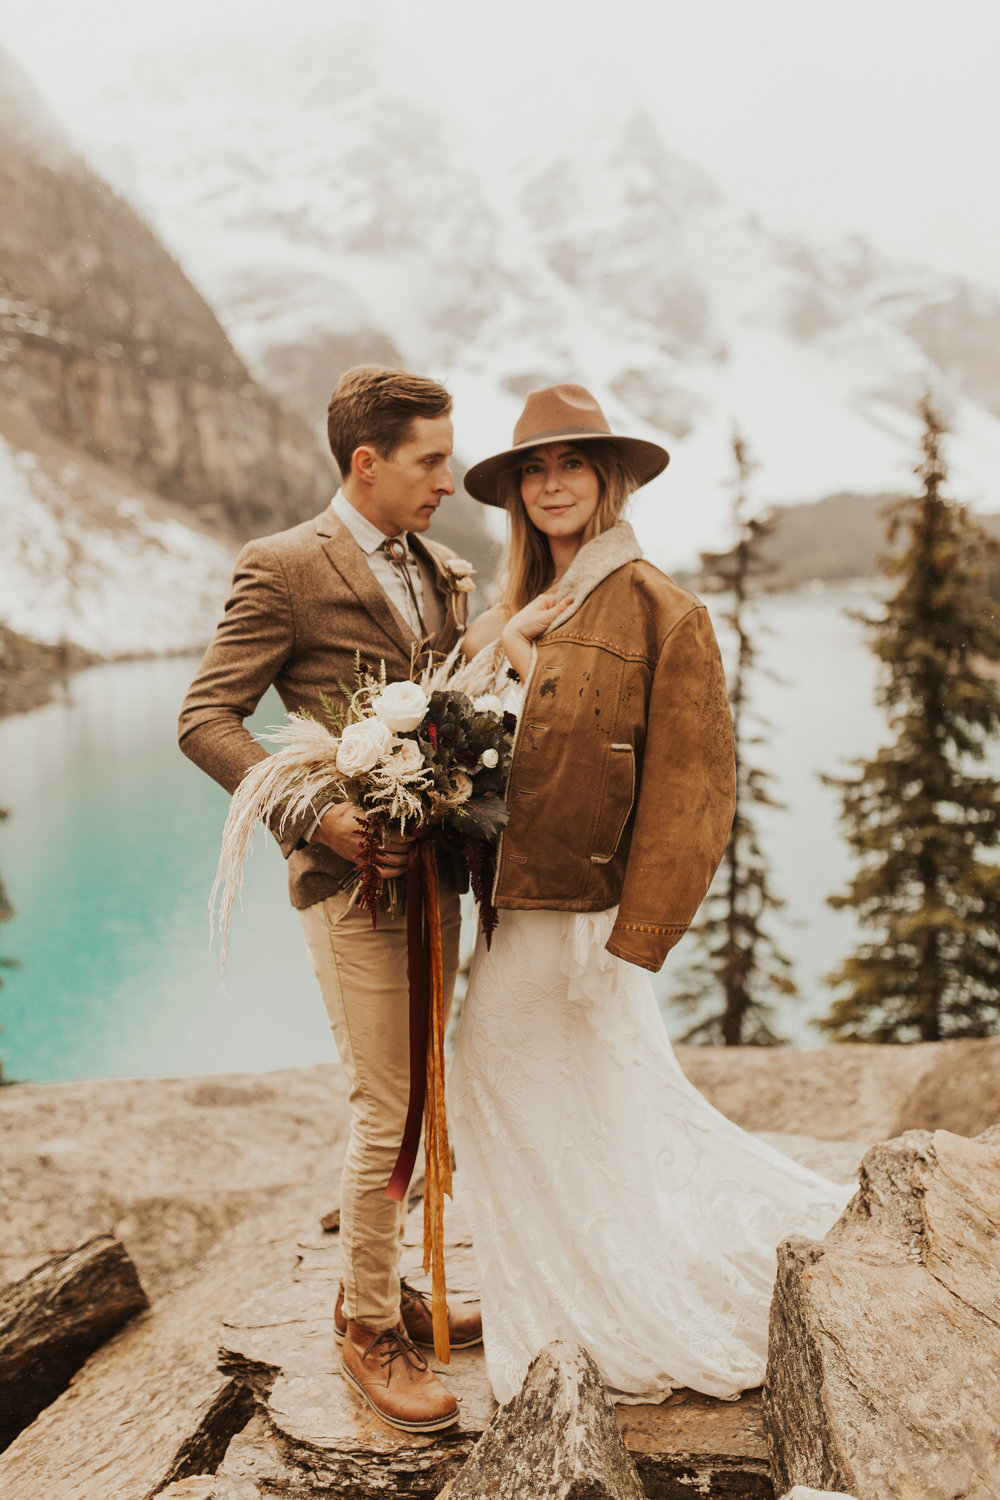 Banff Elopement l Lake Moraine Elopement l Vintage Bolo Tie l Pampas Grass Boho Boquet l Rue Design Wedding Dress l Banff Wedding Photographer l Destination Wedding Photographer l Katy Rose Photo_-56.jpg